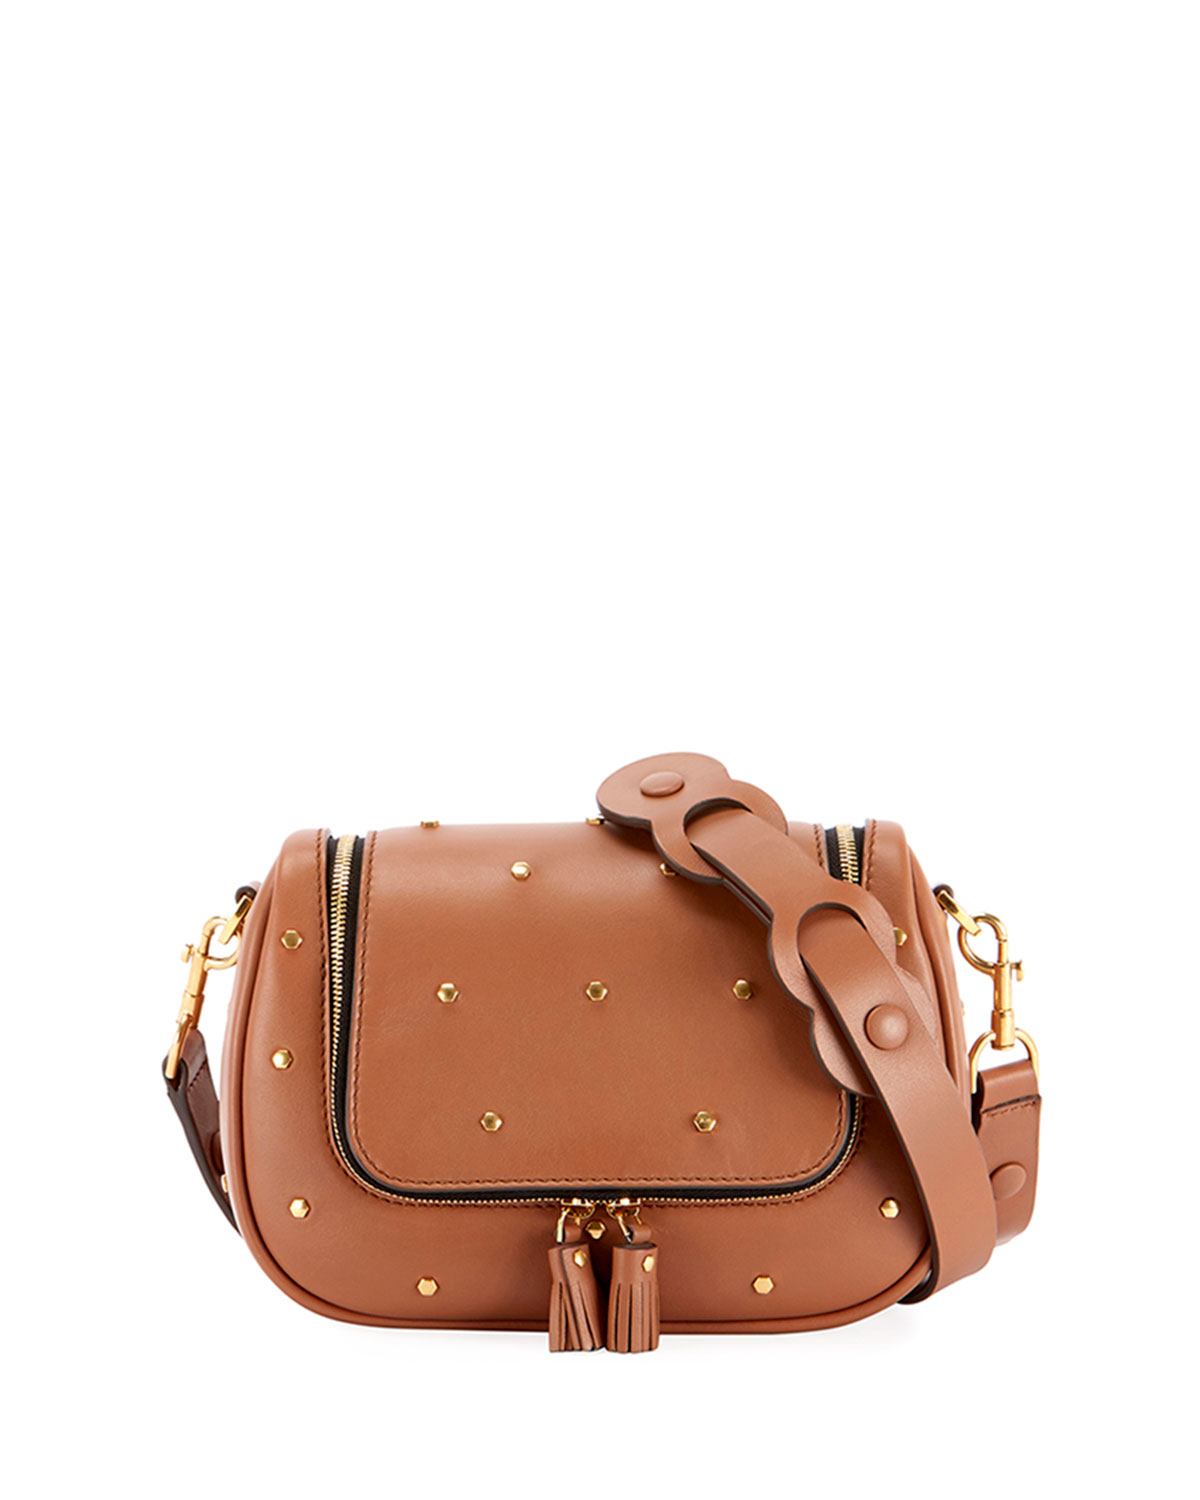 Vere Small Soft Satchel Bag in Tan